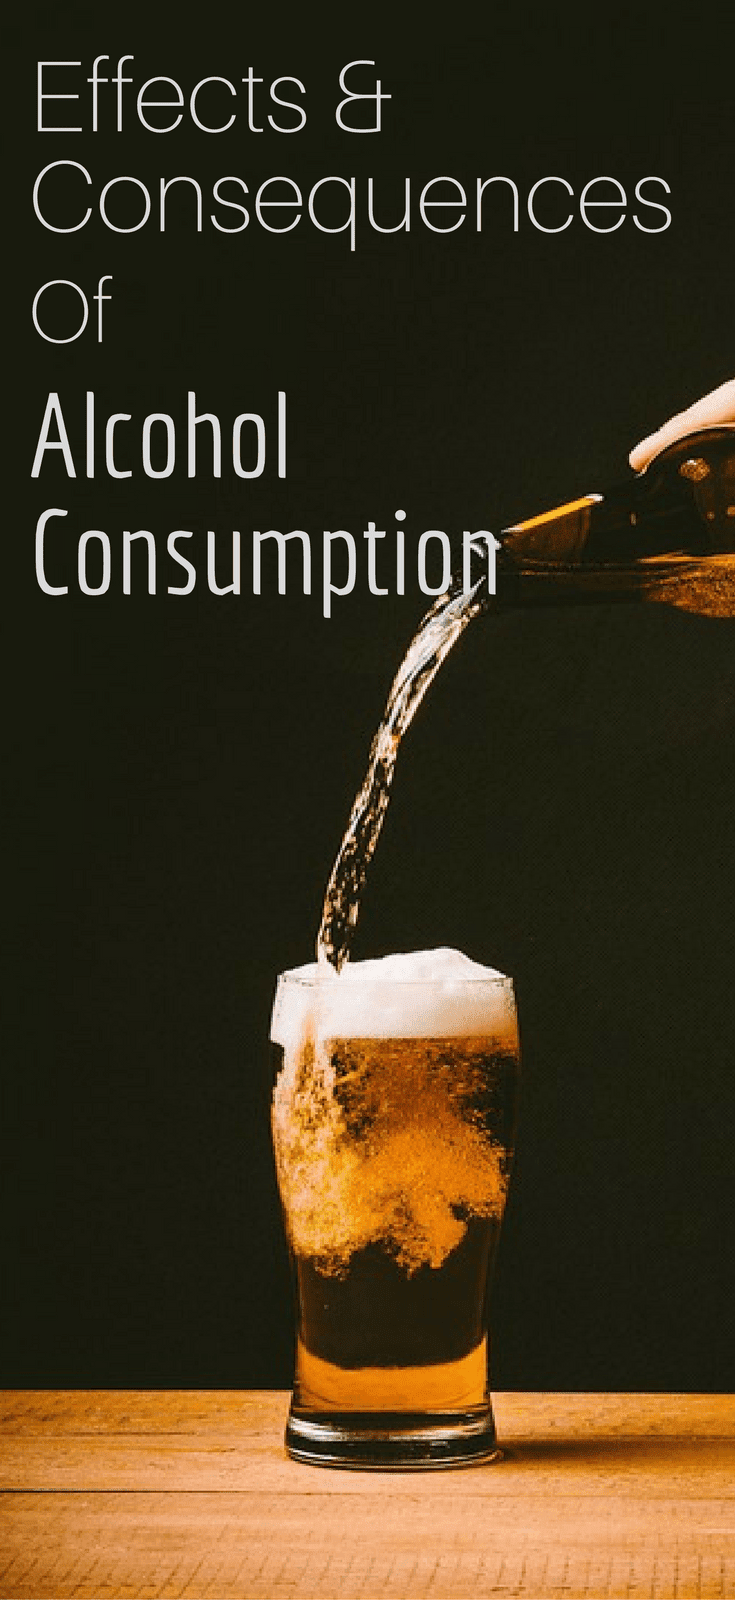 Effects And Consequences Of Alcohol Consumption